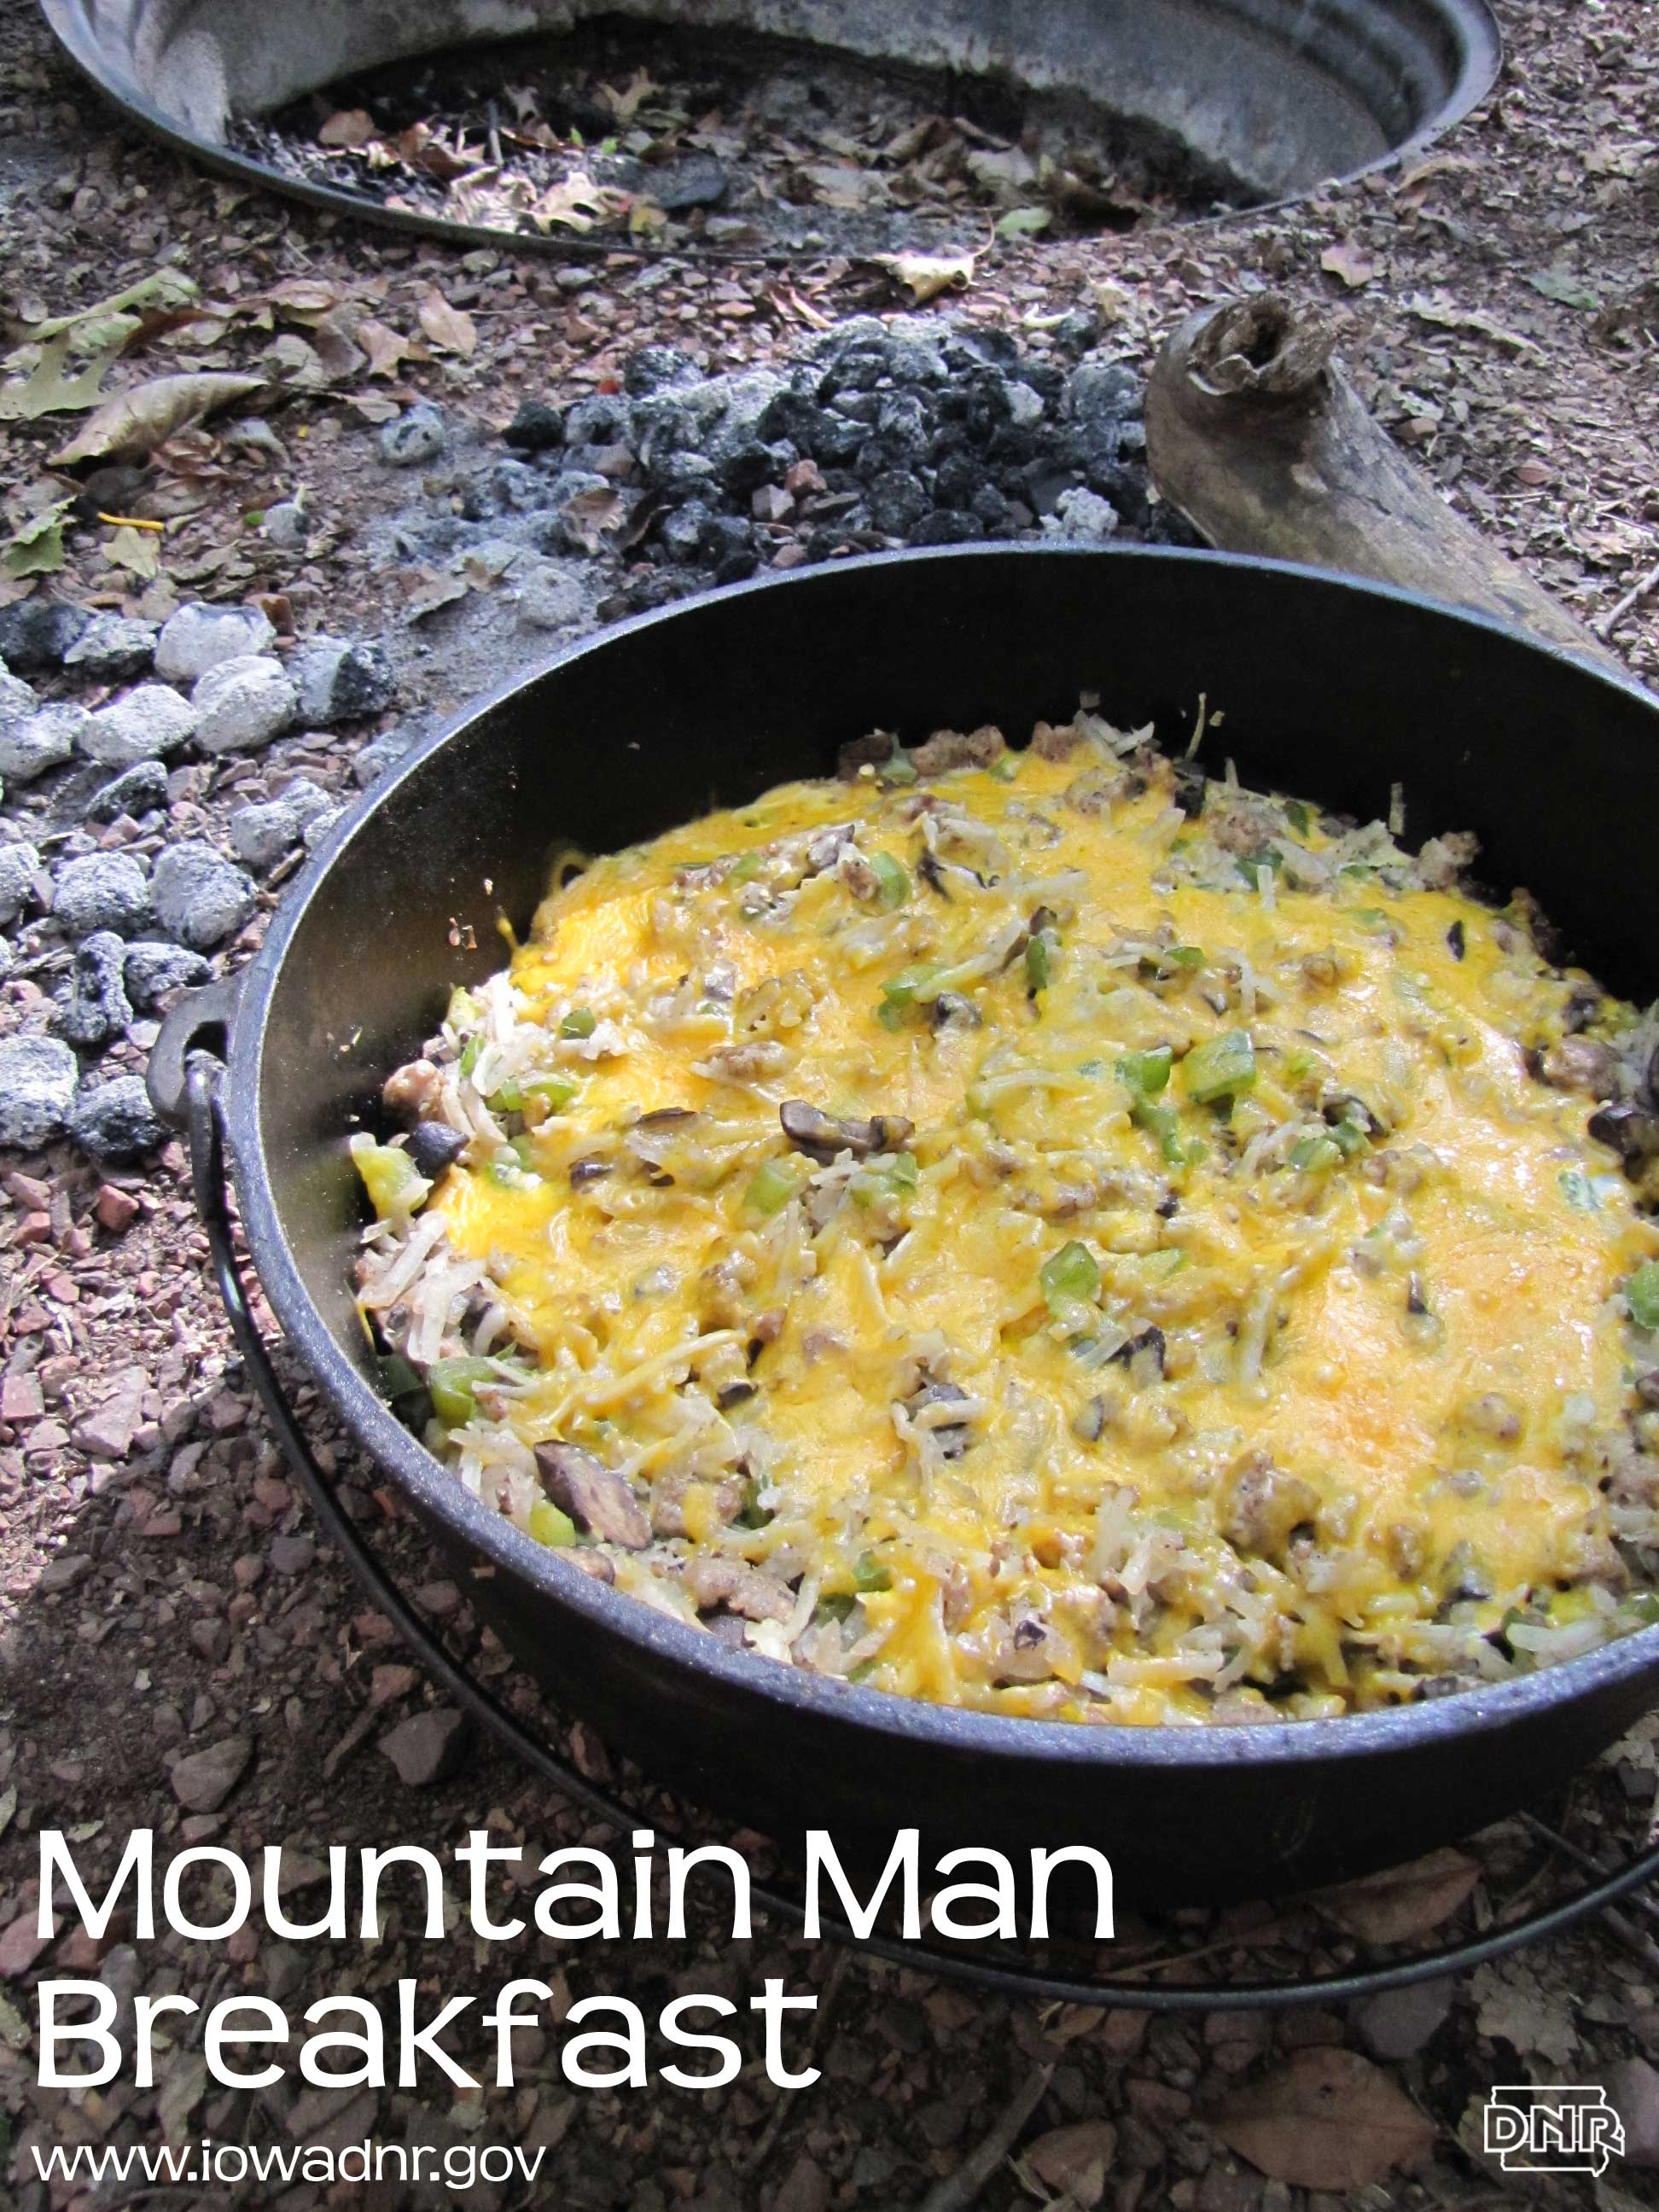 Dutch oven mountain man breakfast recipe from the Iowa DNR